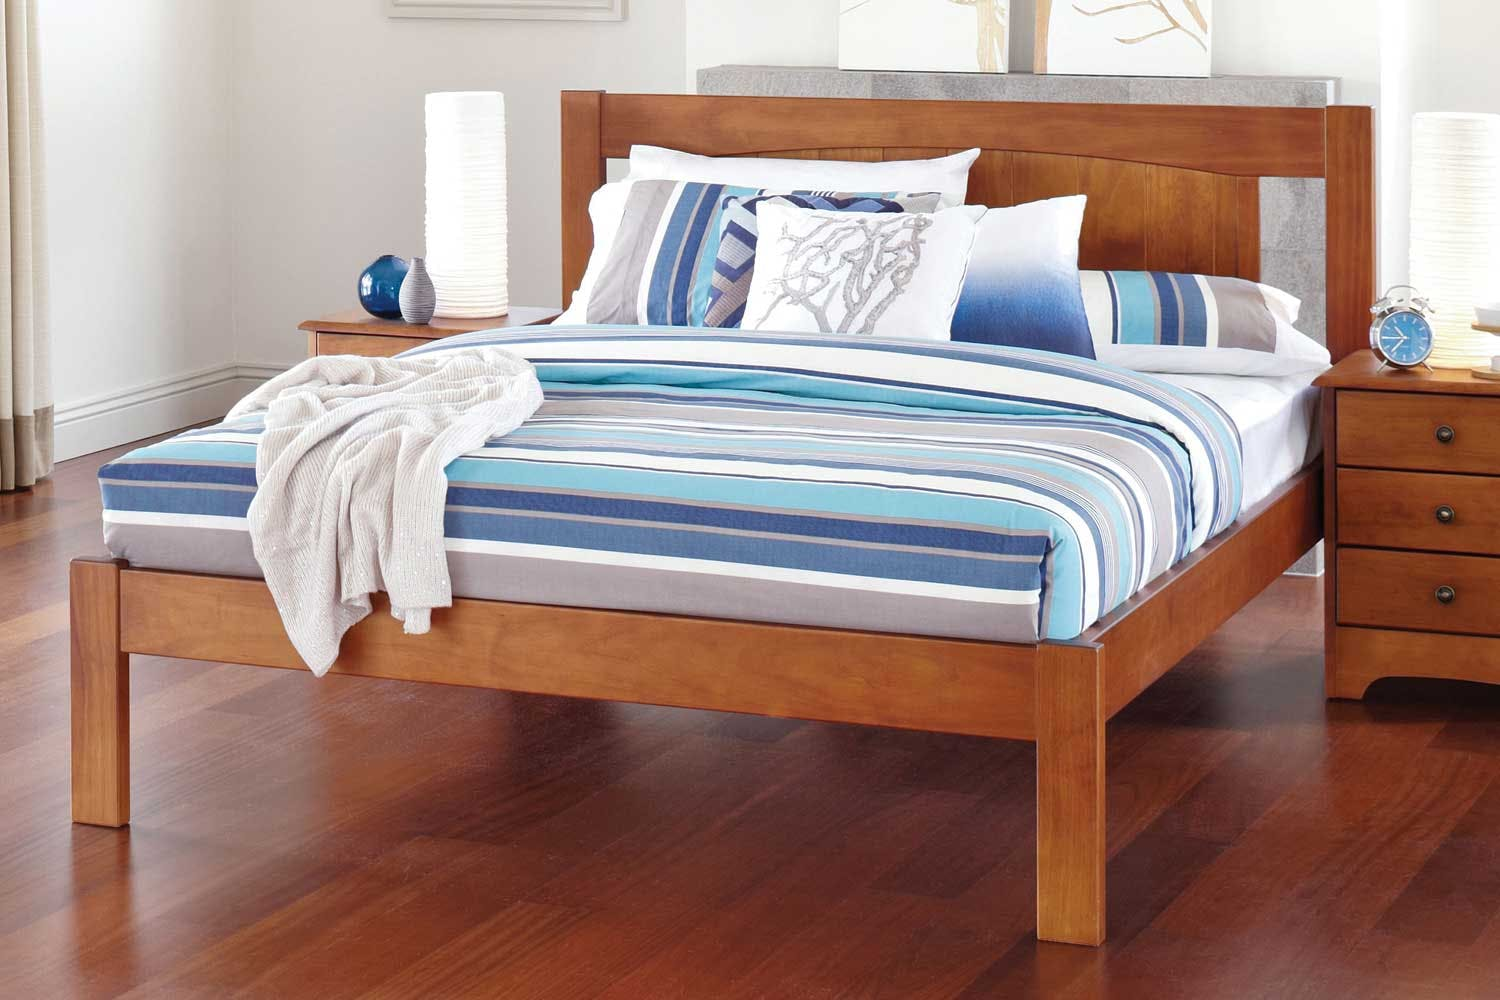 Image of Calais Super King Bed Frame by Coastwood Furniture